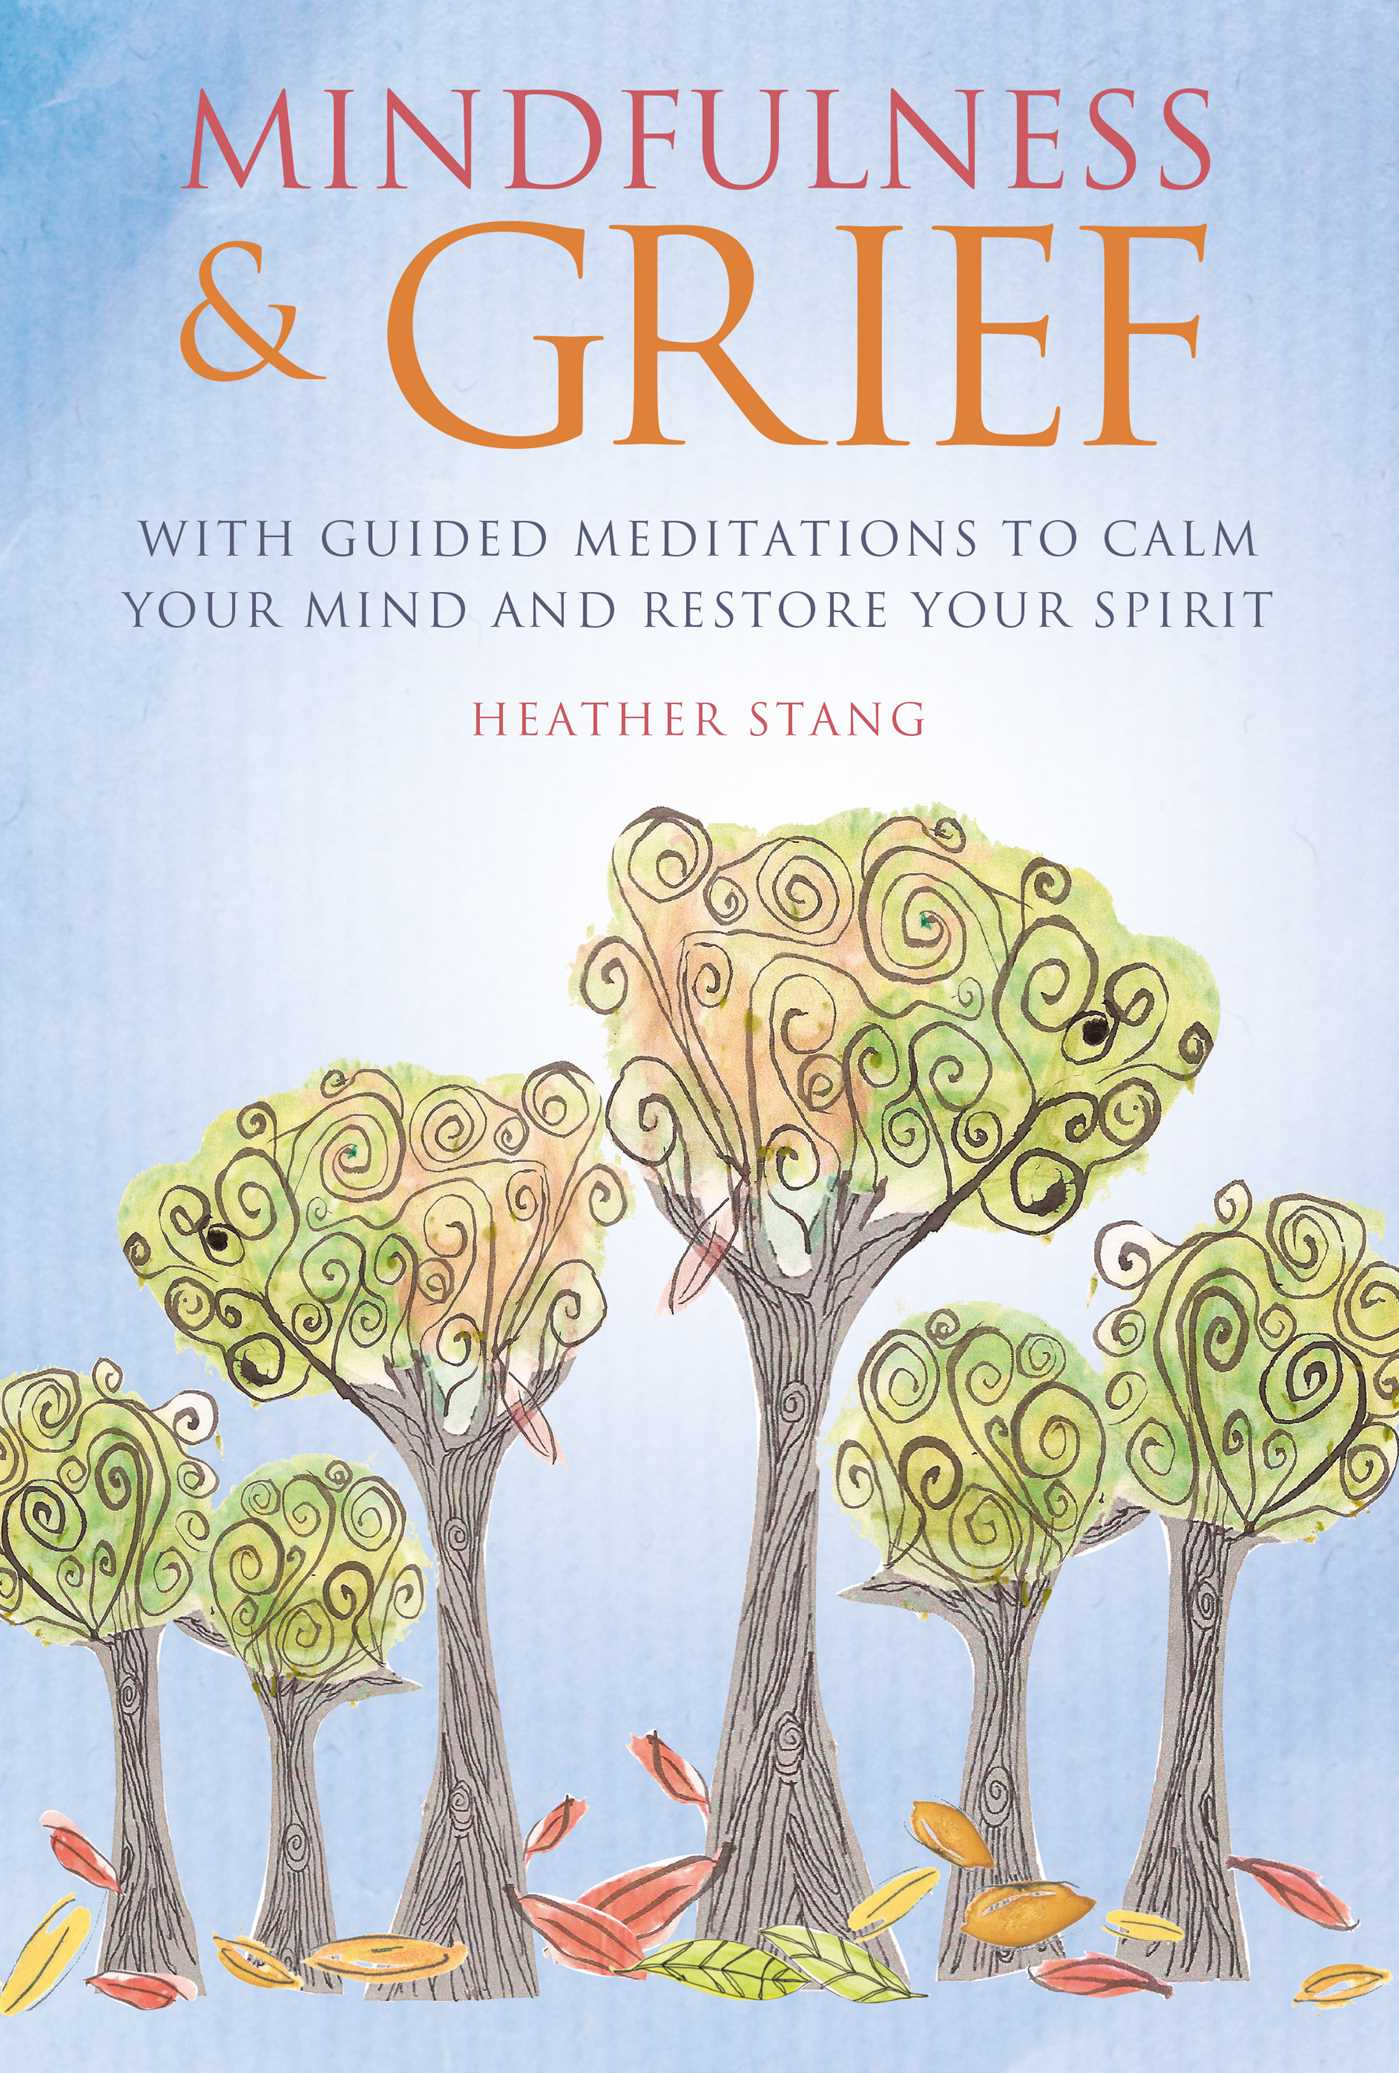 Mindfulness and grief 9781782496731 hr